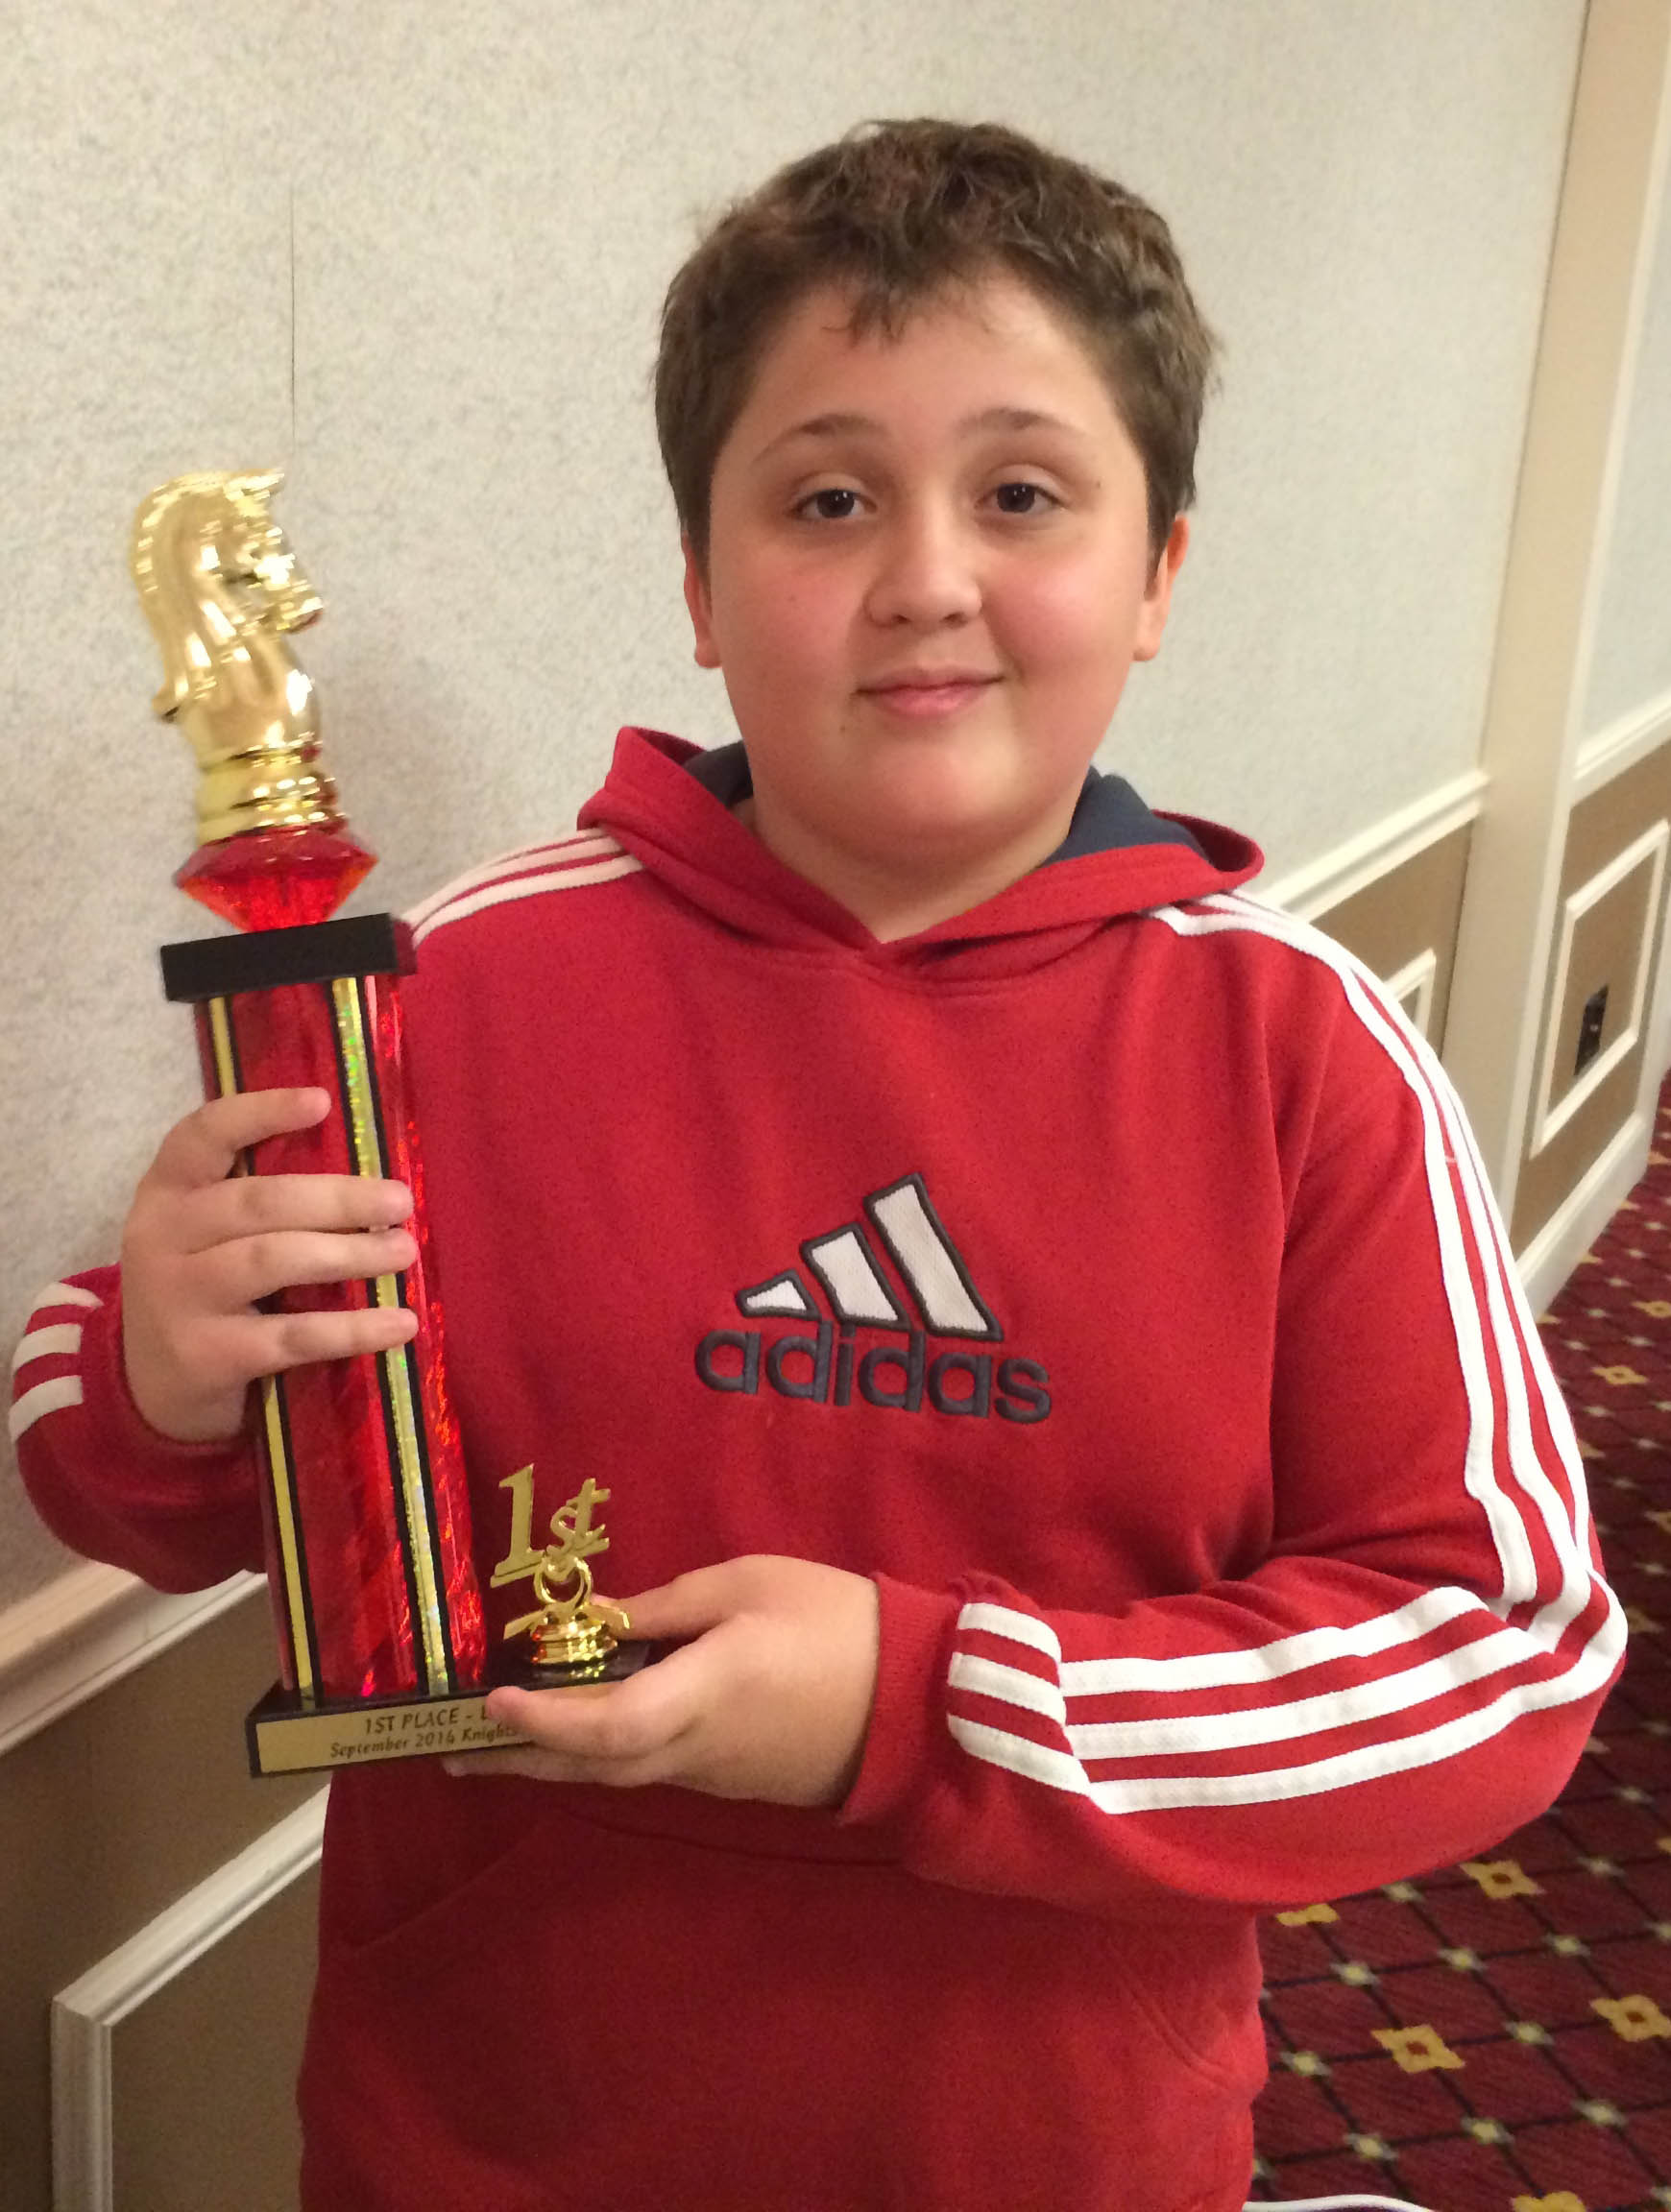 Frank Wins 1st Place in Renaissance Knights Chess Tournament